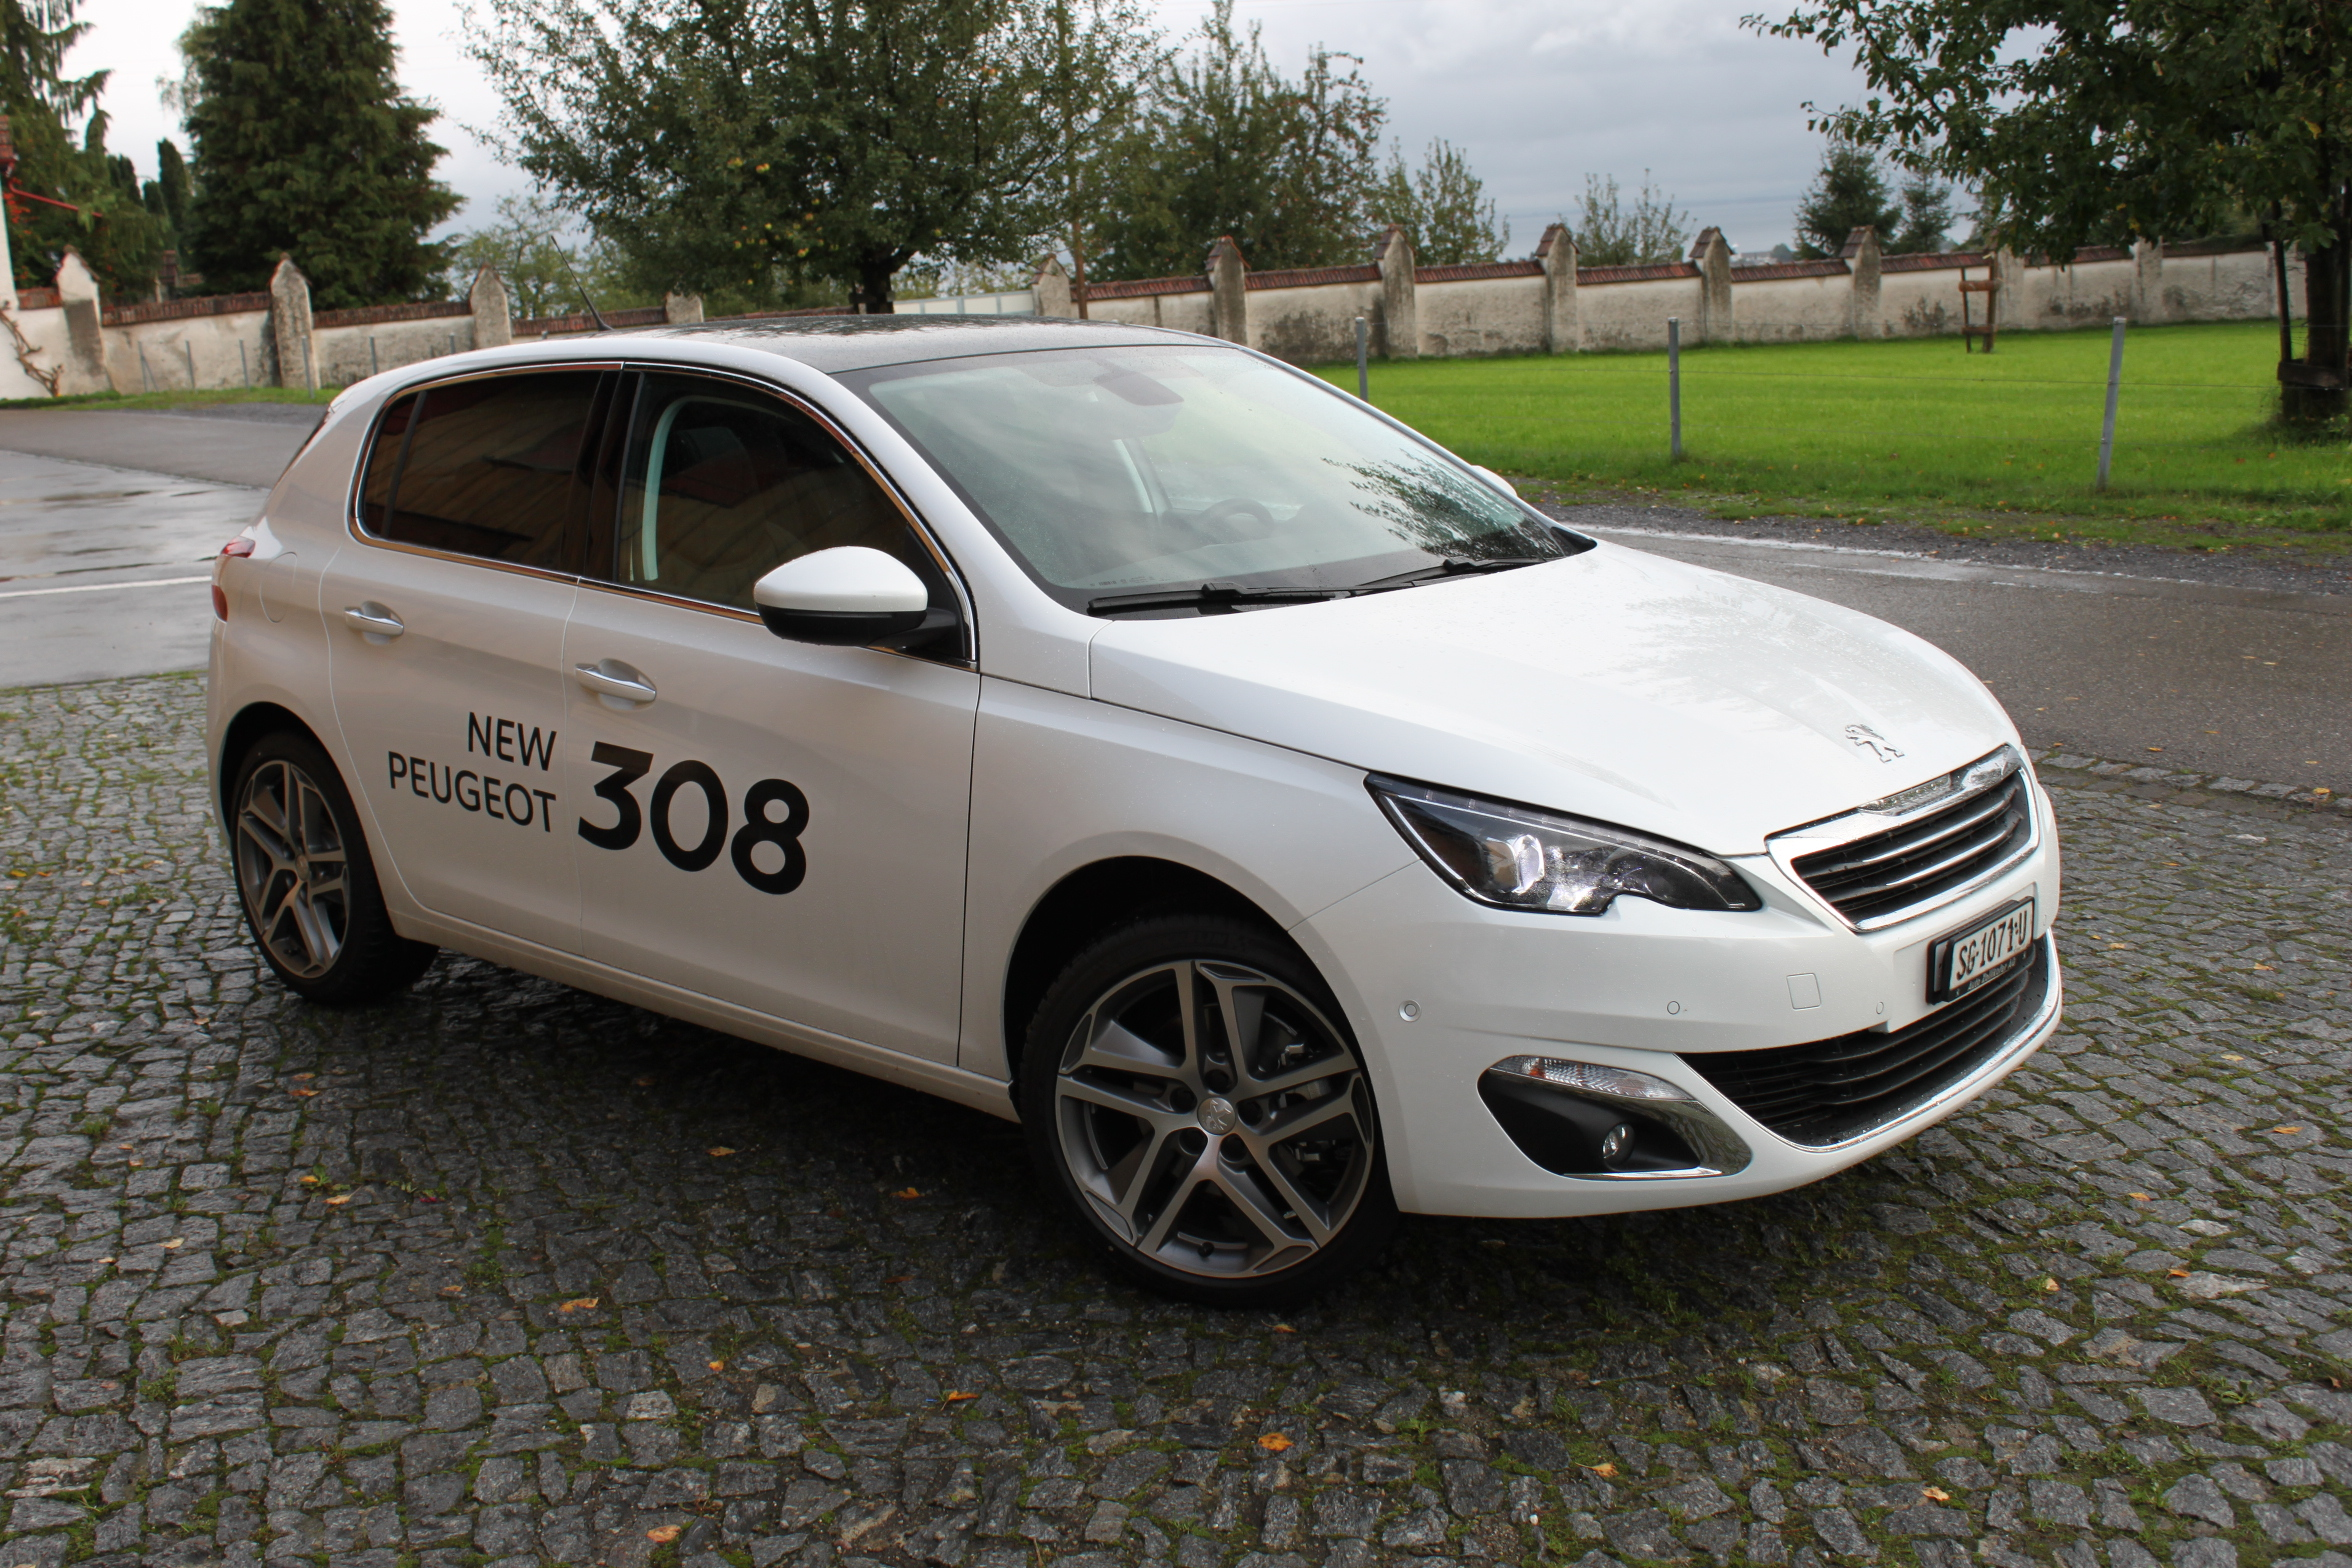 car of the year 2014 peugeot 308 autonews. Black Bedroom Furniture Sets. Home Design Ideas